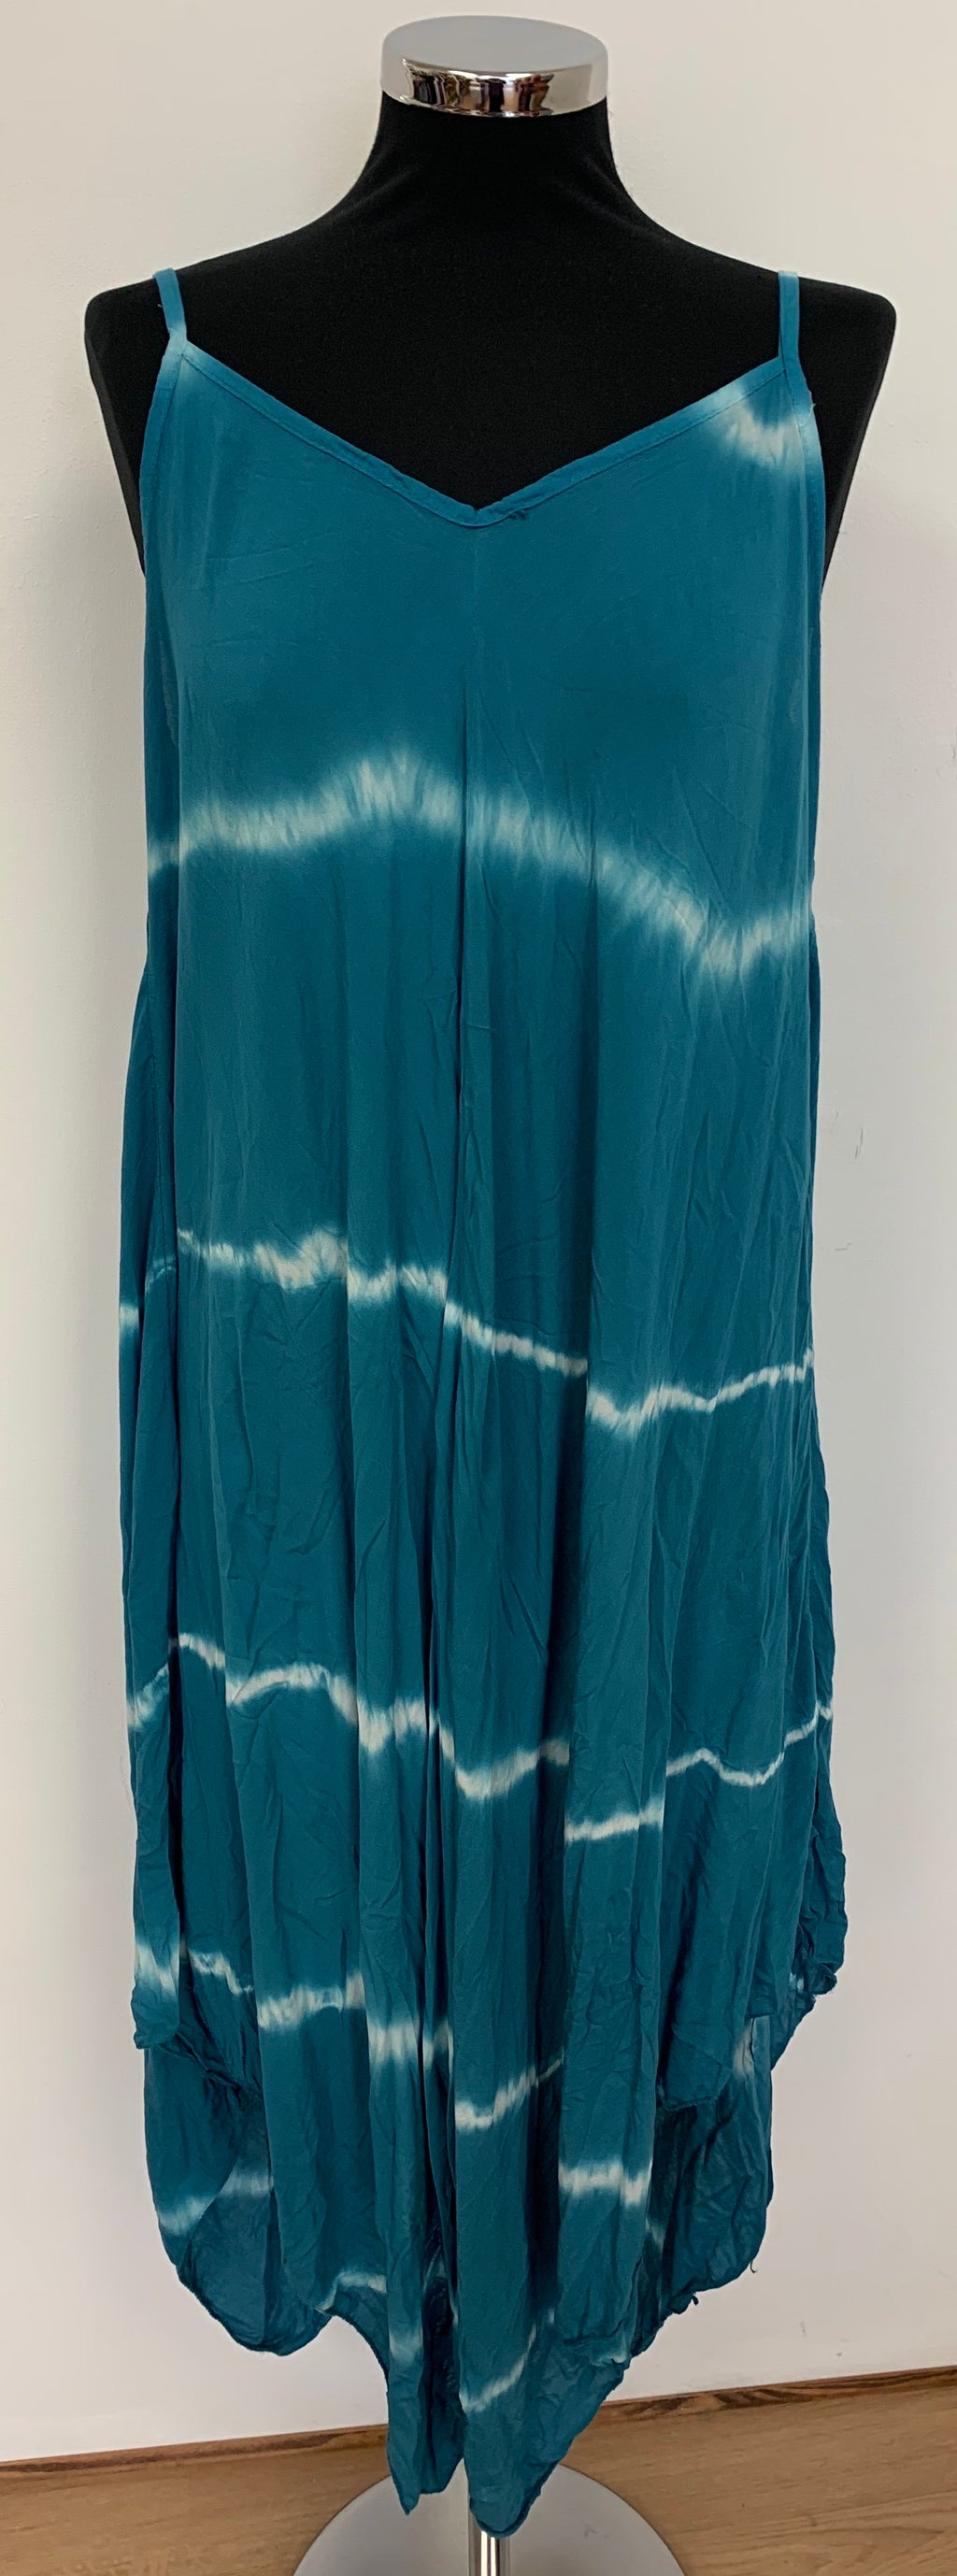 Classic Handkerchief Style Maxi Dress - Teal Tie Dye Design